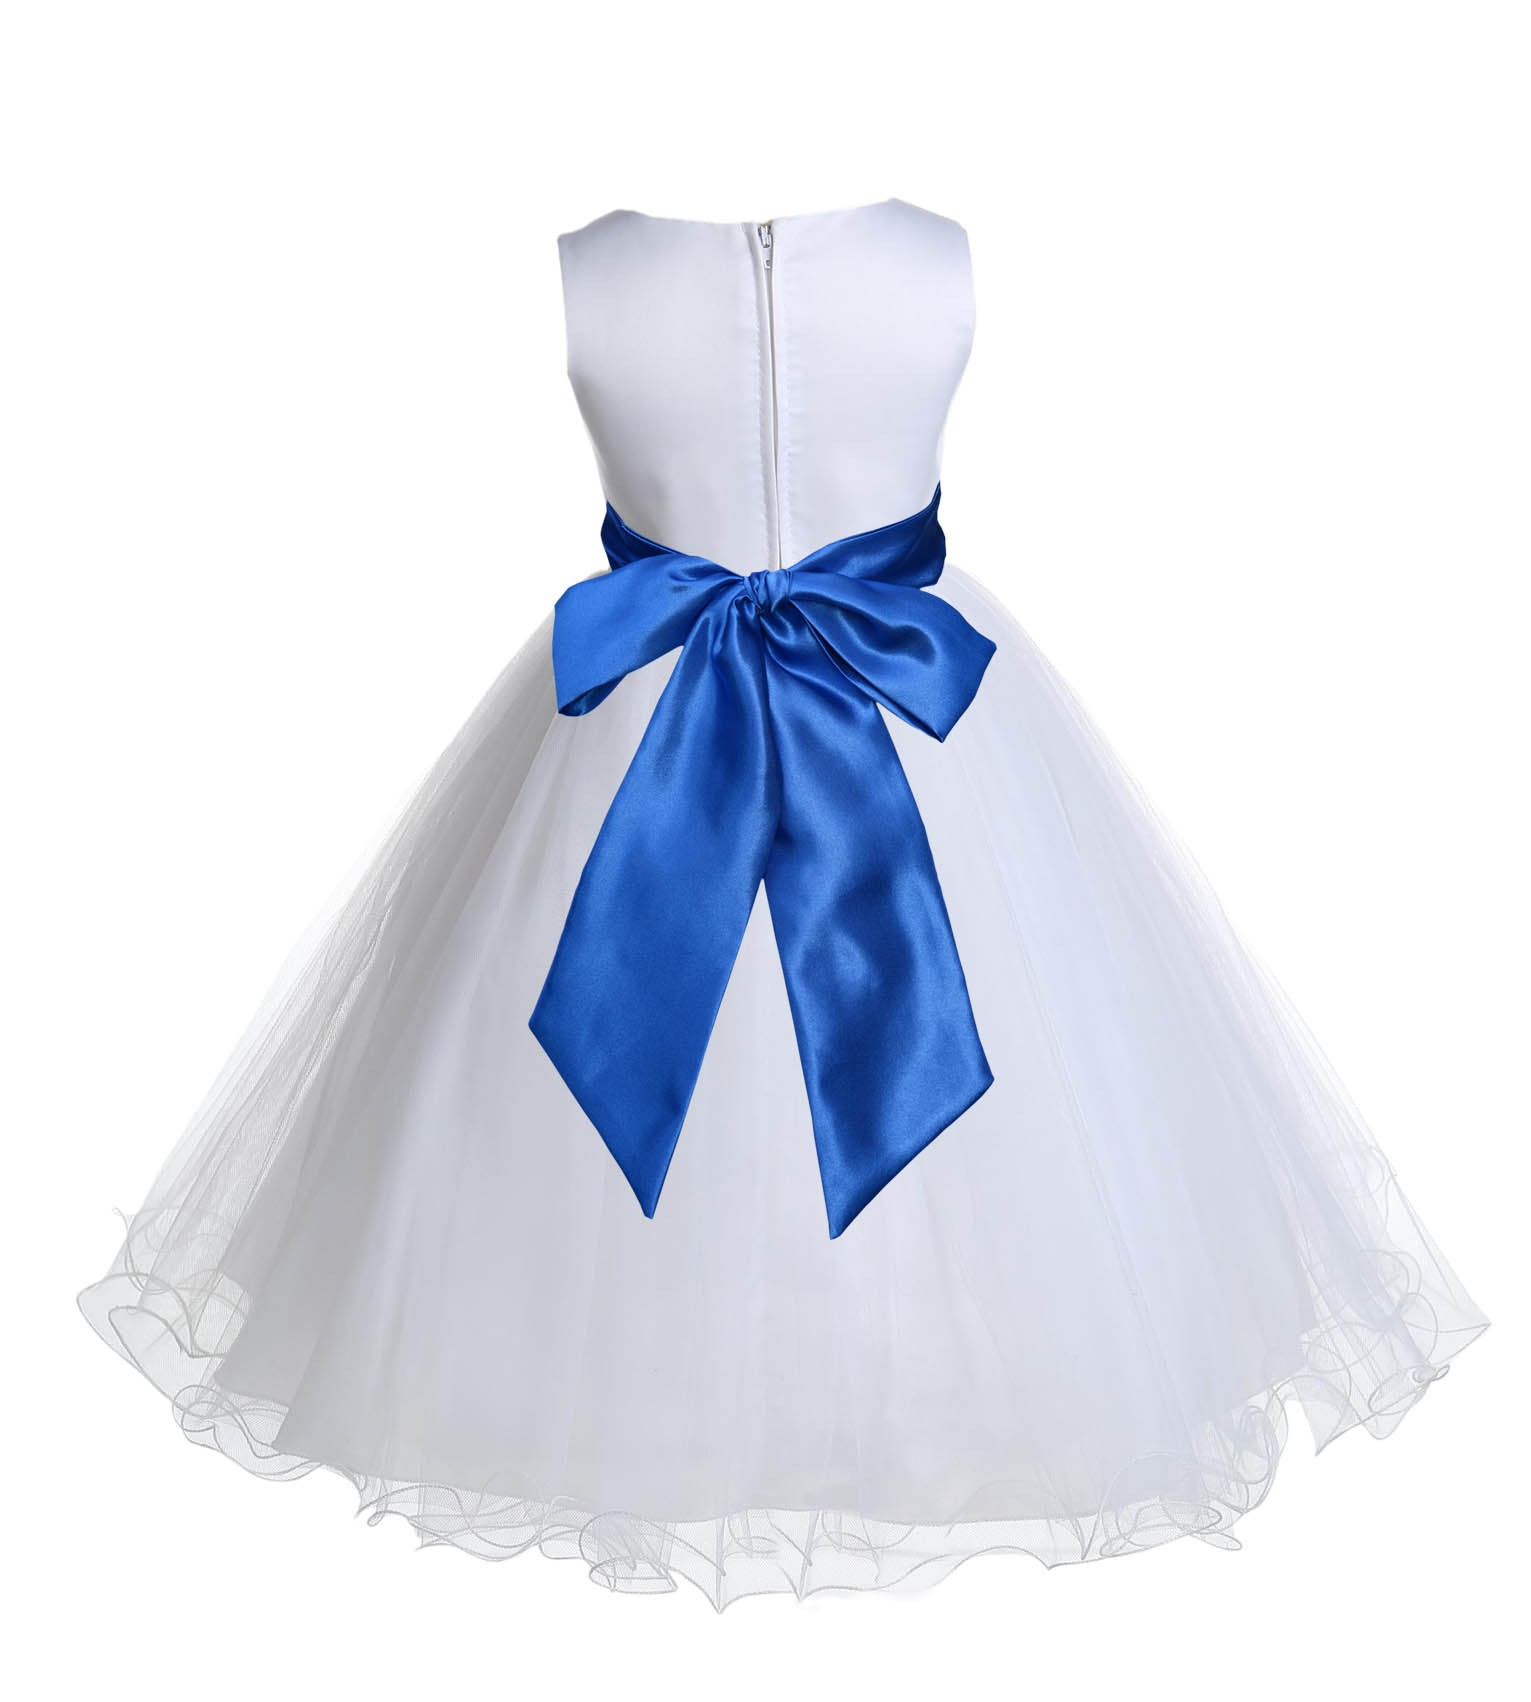 White Royal Blue Tulle Rattail Edge Flower Girl Dress Wedding Bridal 829s